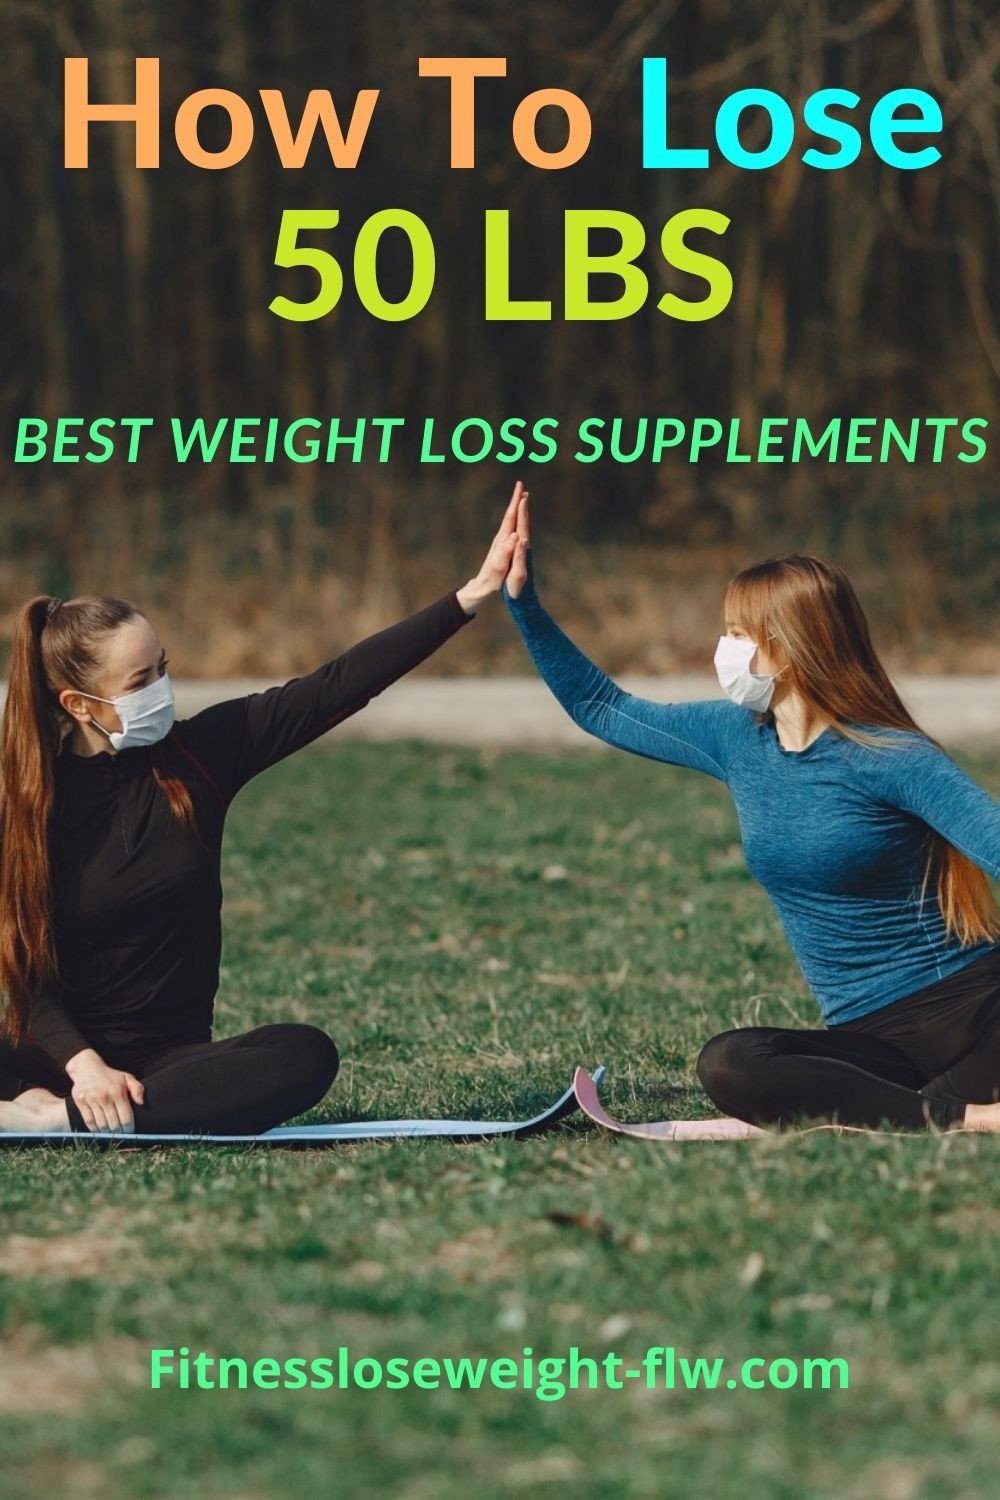 How fast can you lose 50 pounds